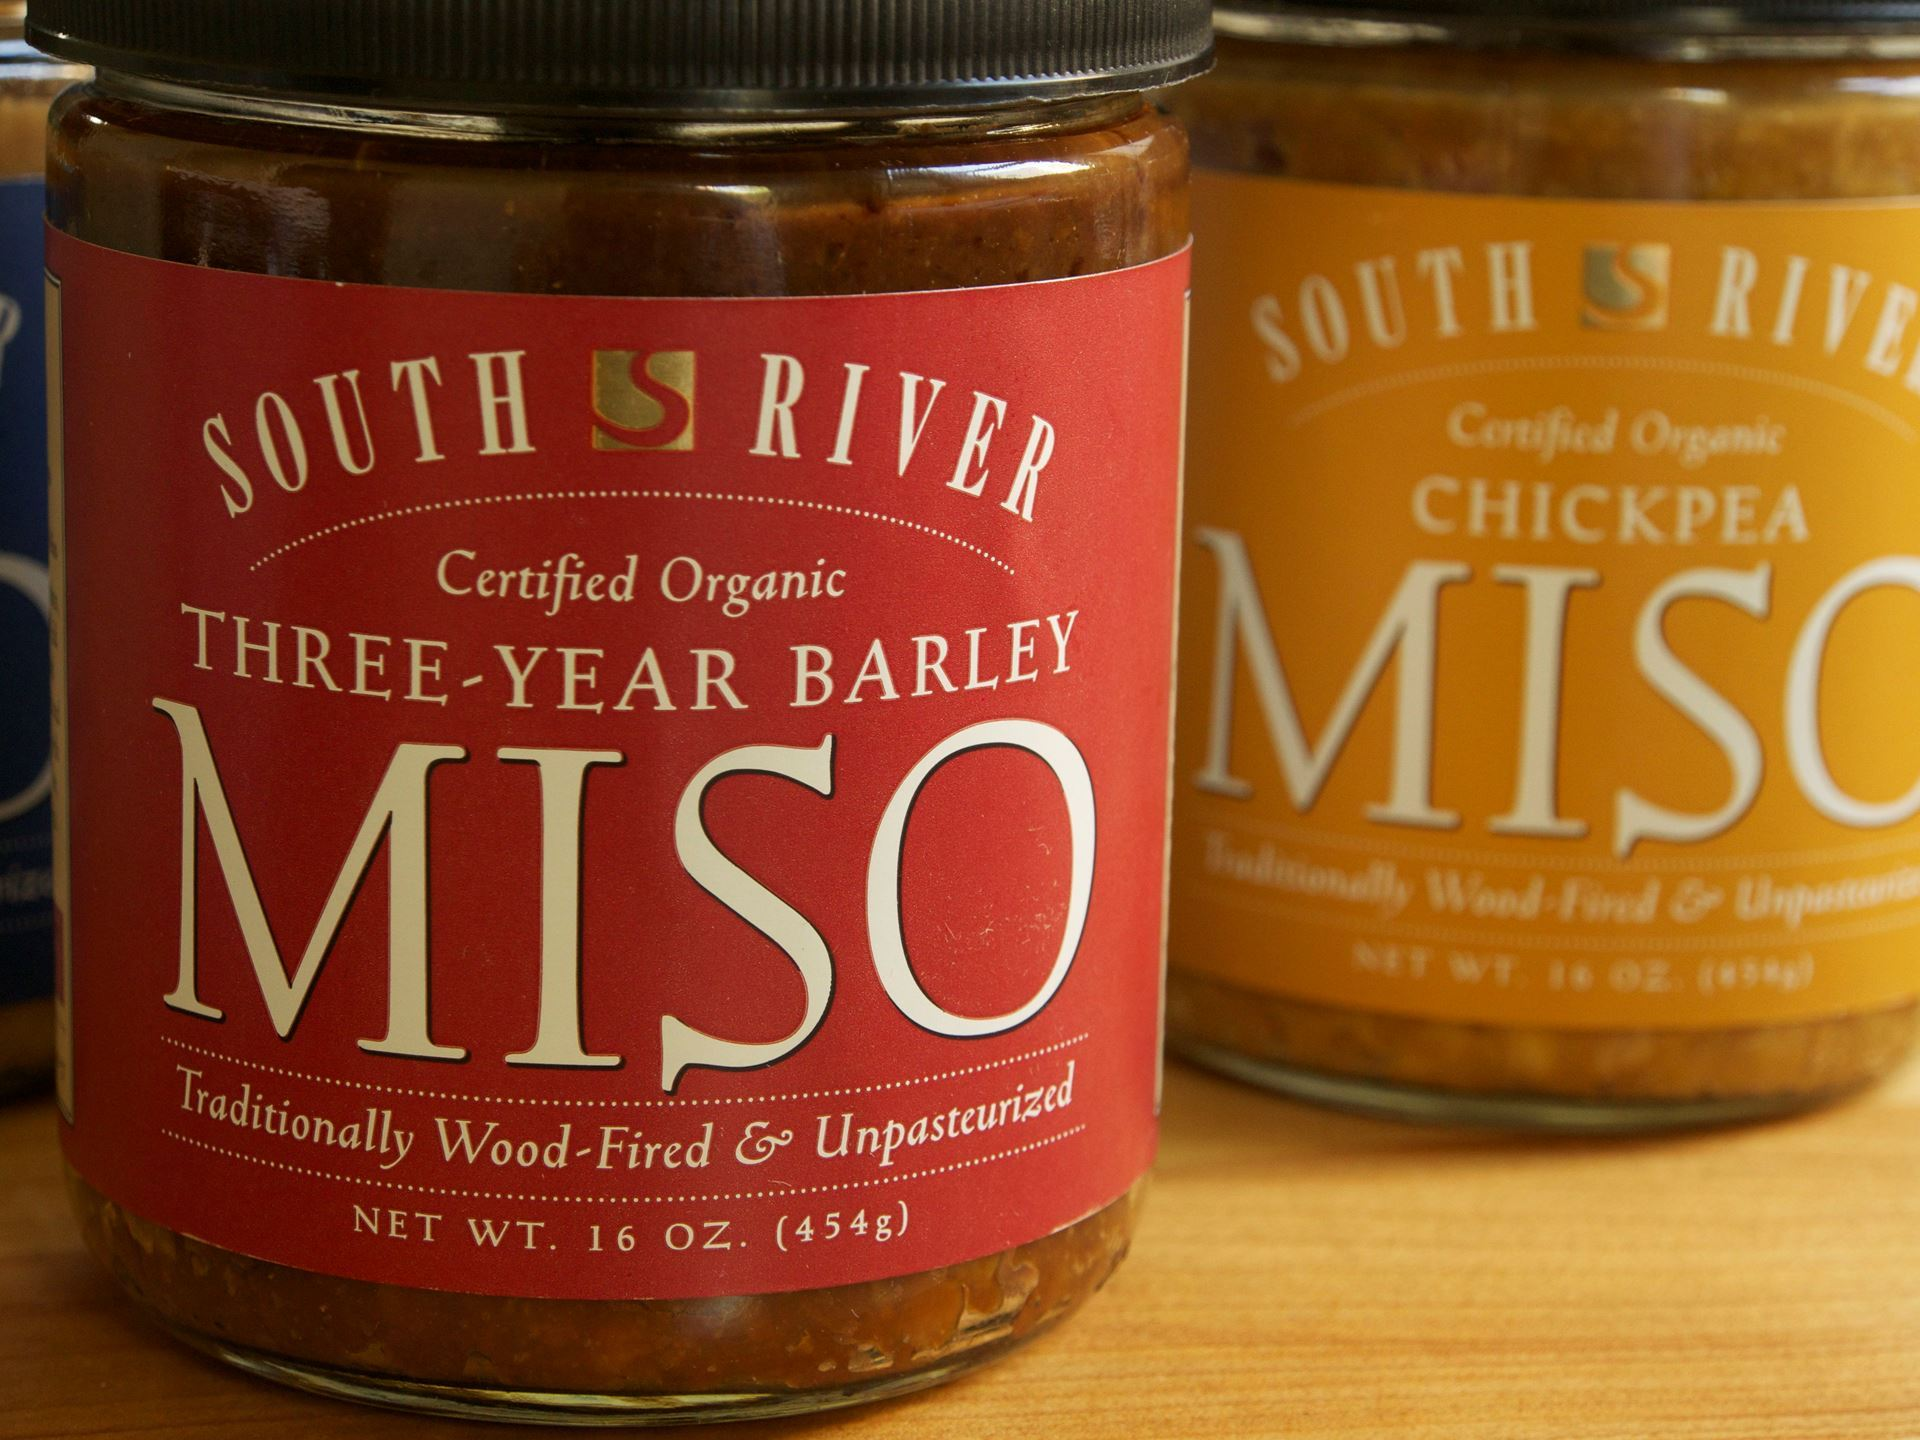 Picture of South River Three-Year Barley Miso